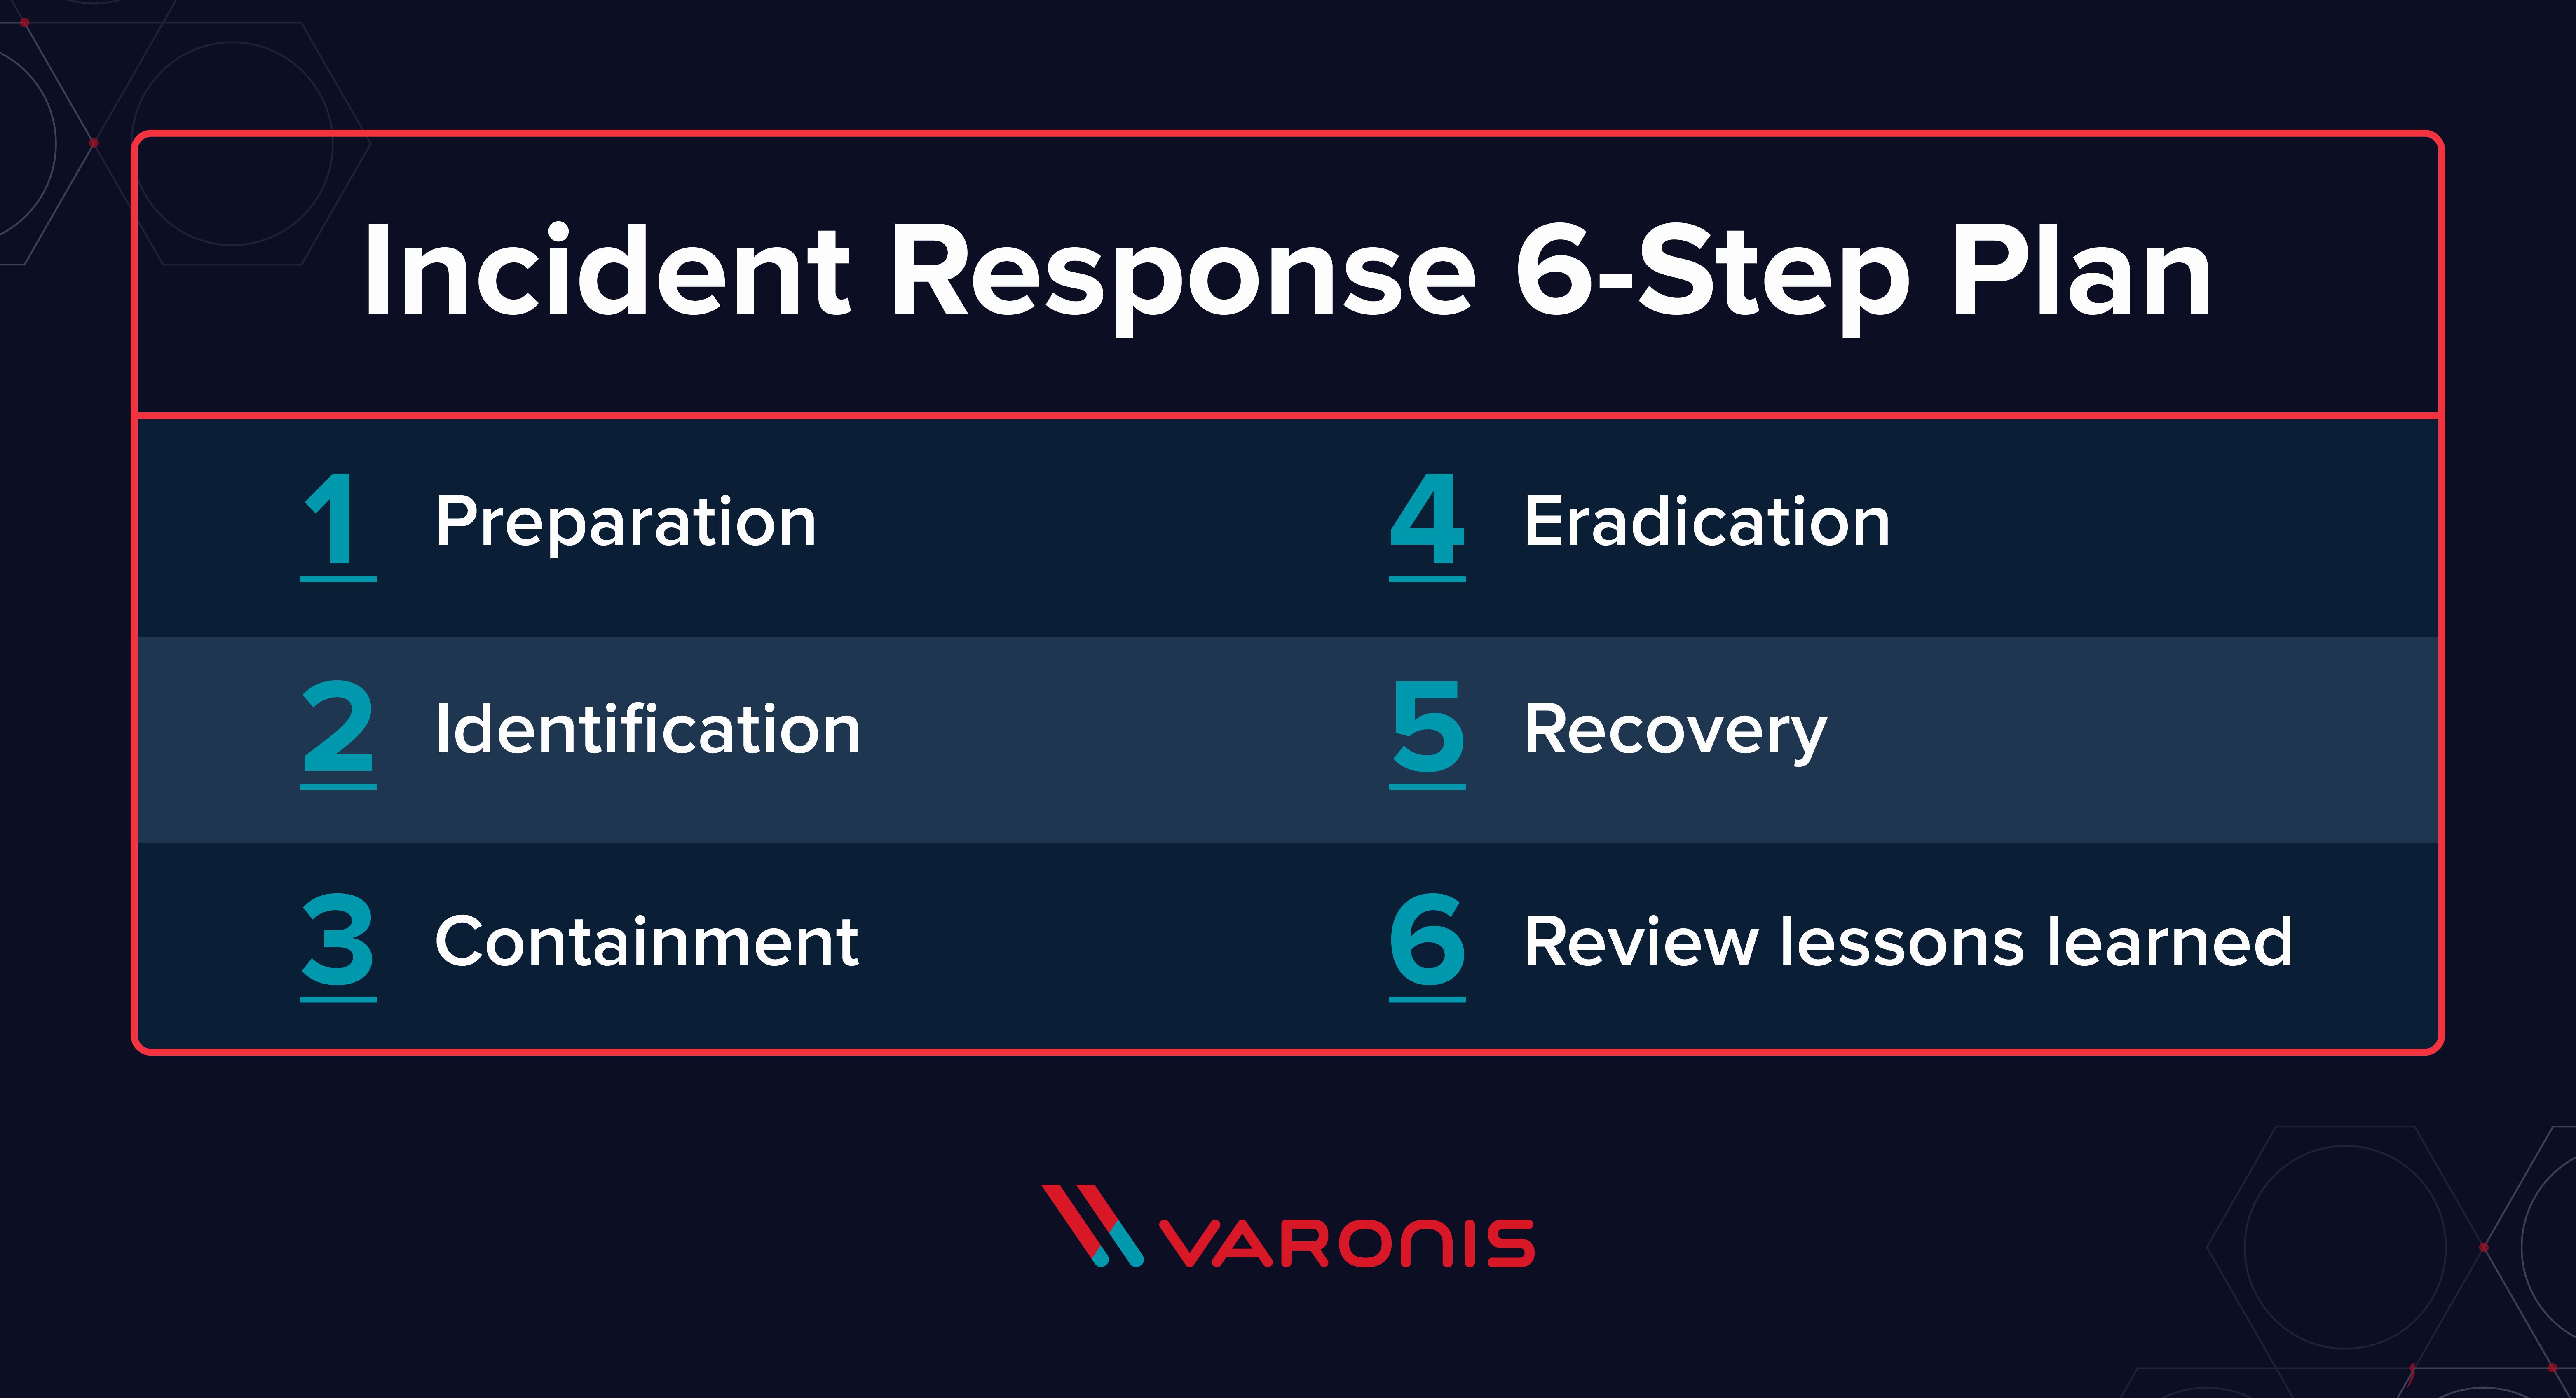 Incident Response Plan Template Sans New What is Incident Response A 6 Step Plan